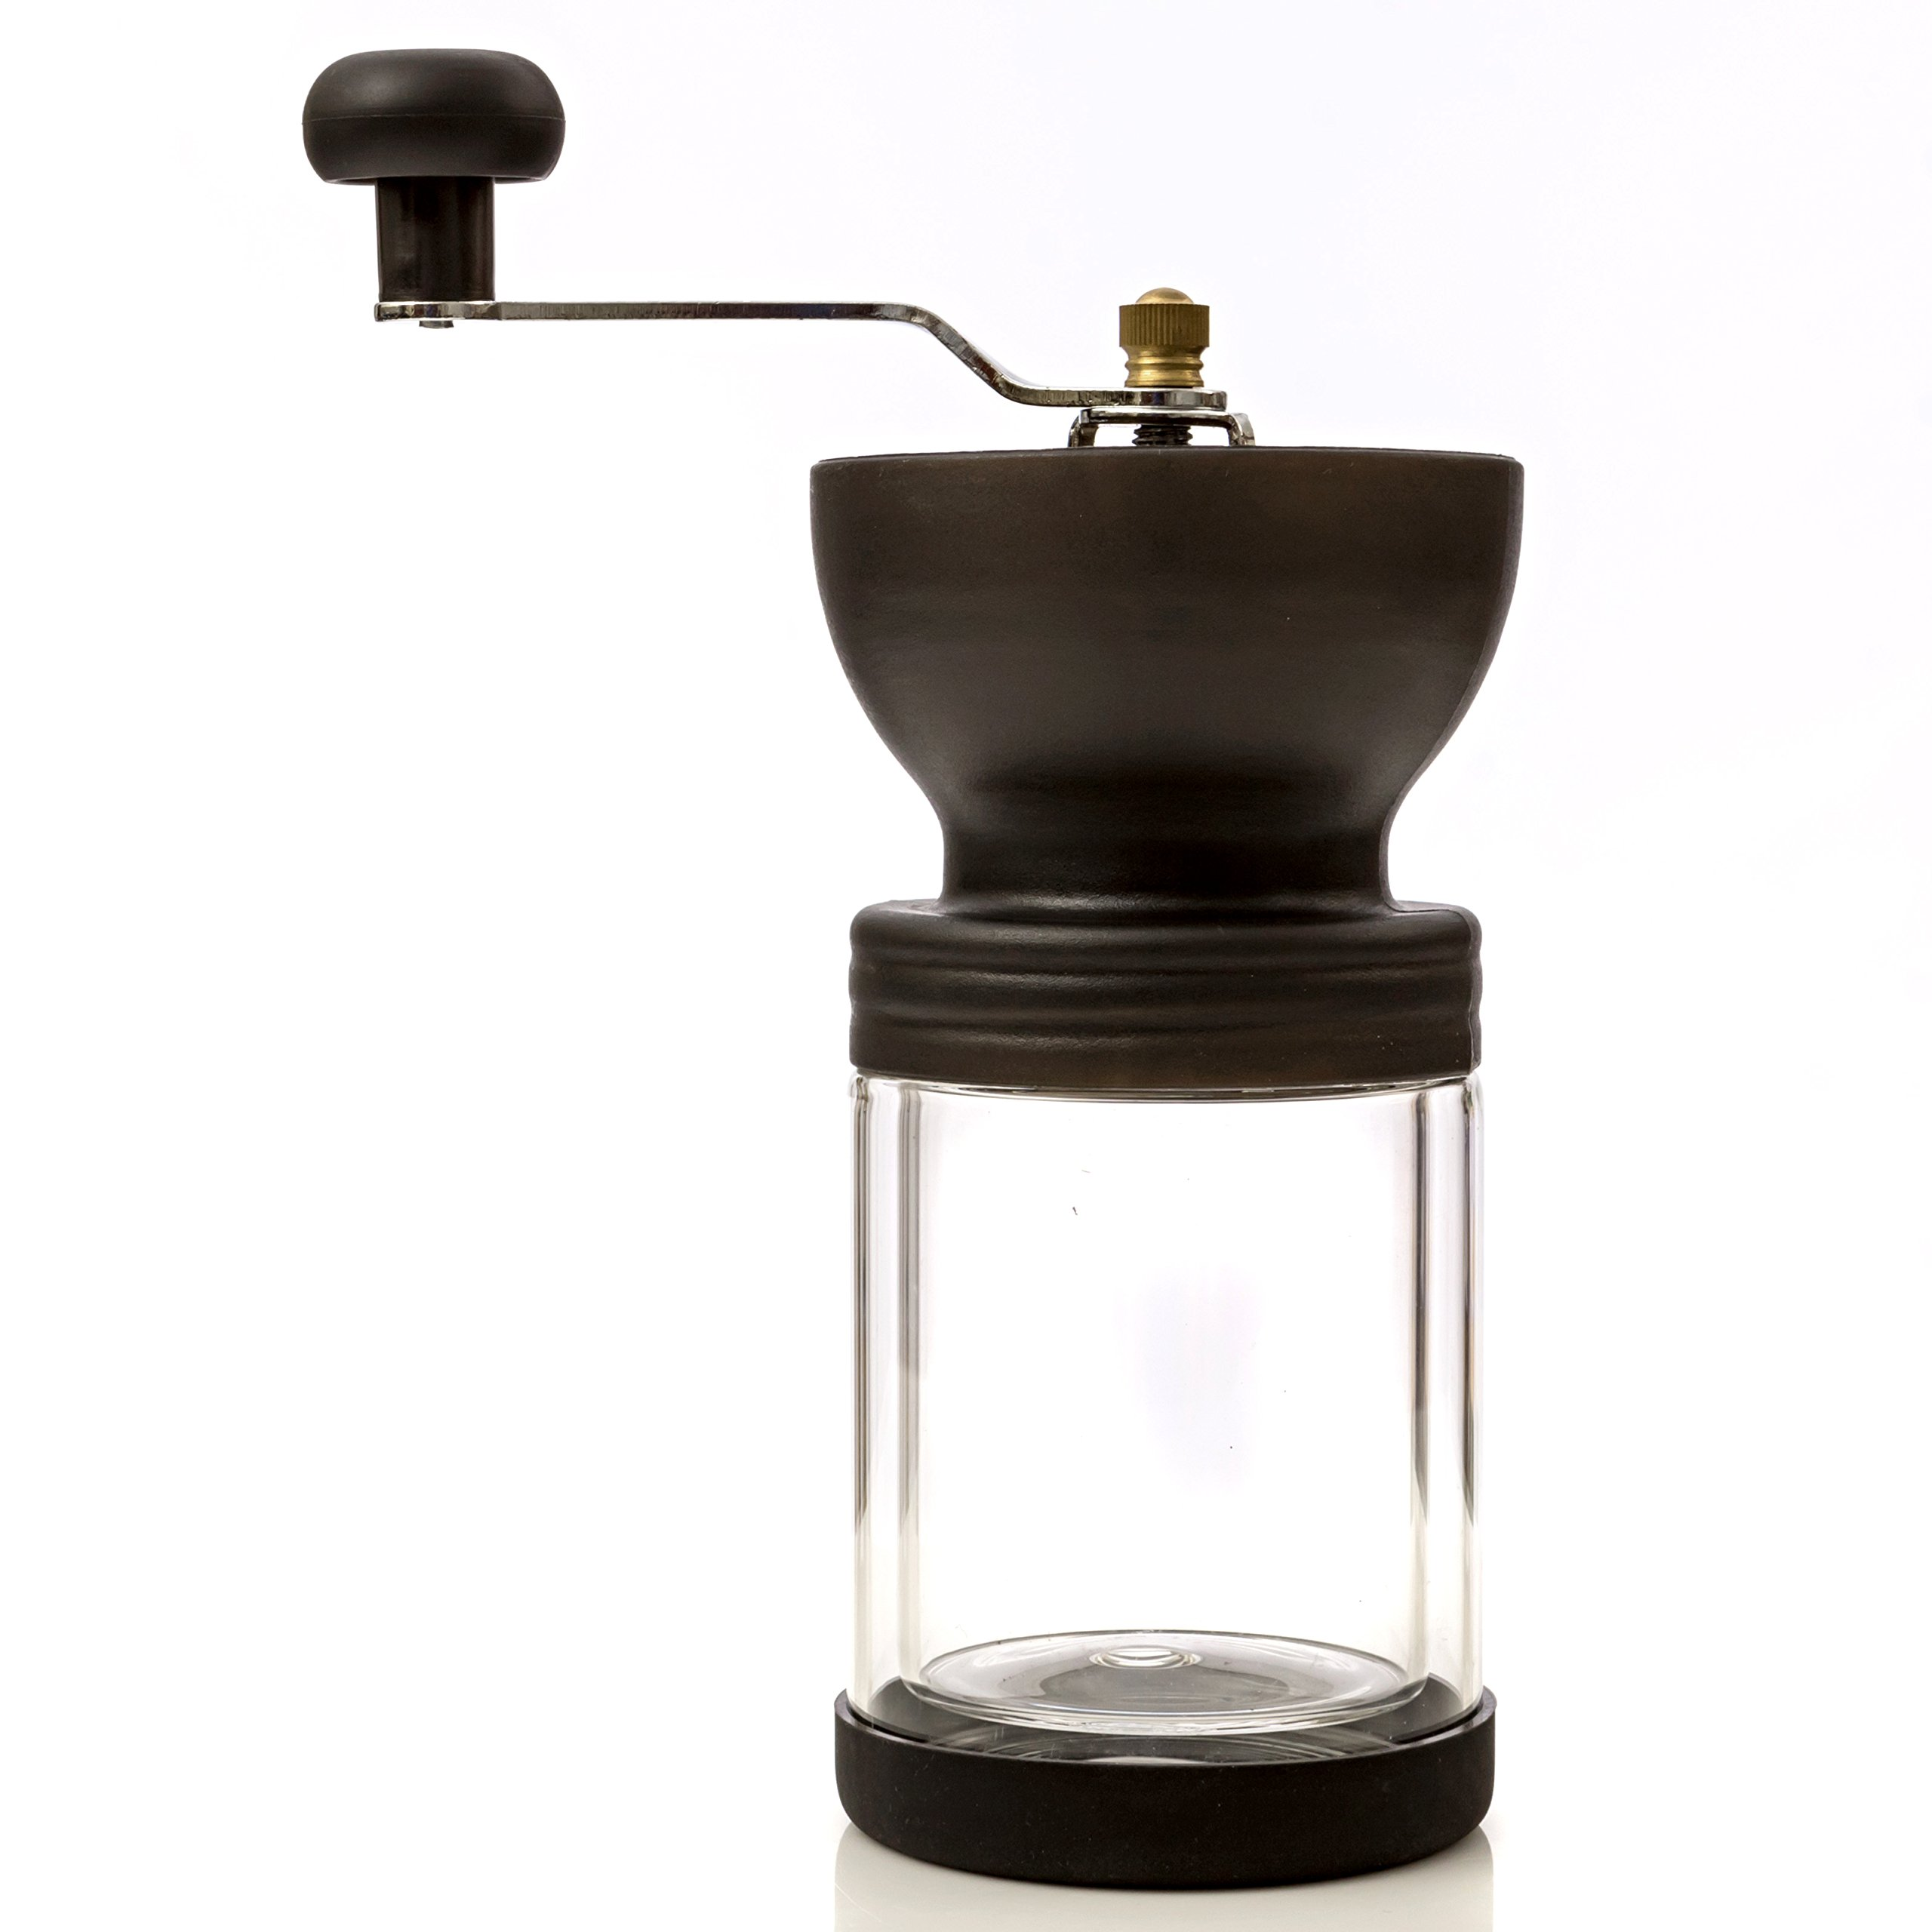 best manual grinder for french press